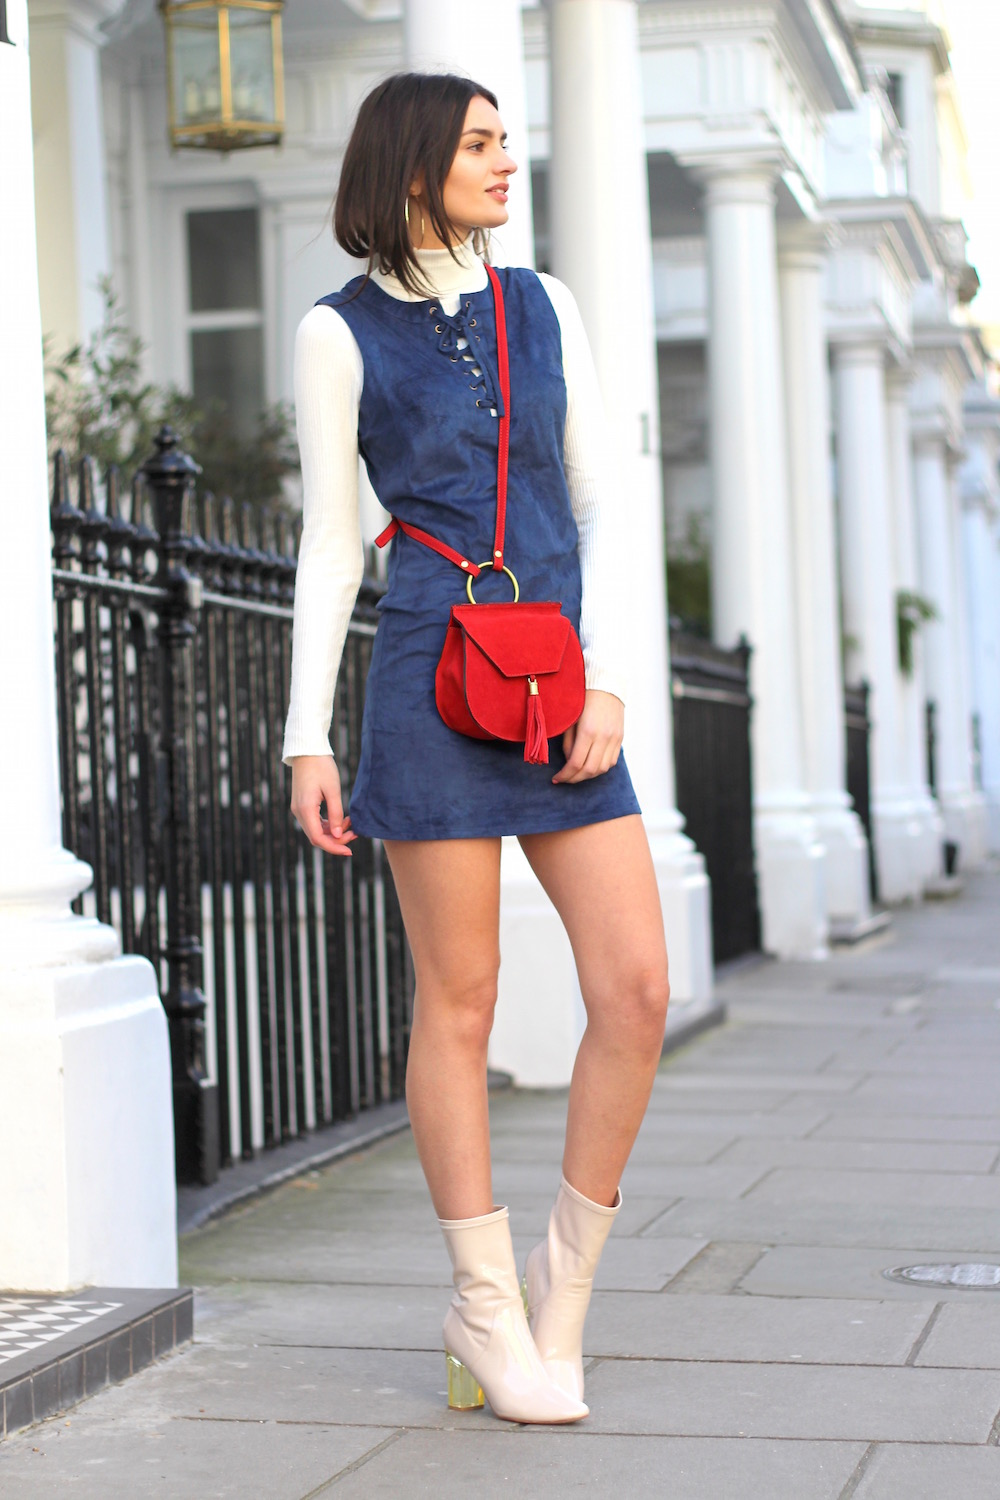 london personal style blogger peexo